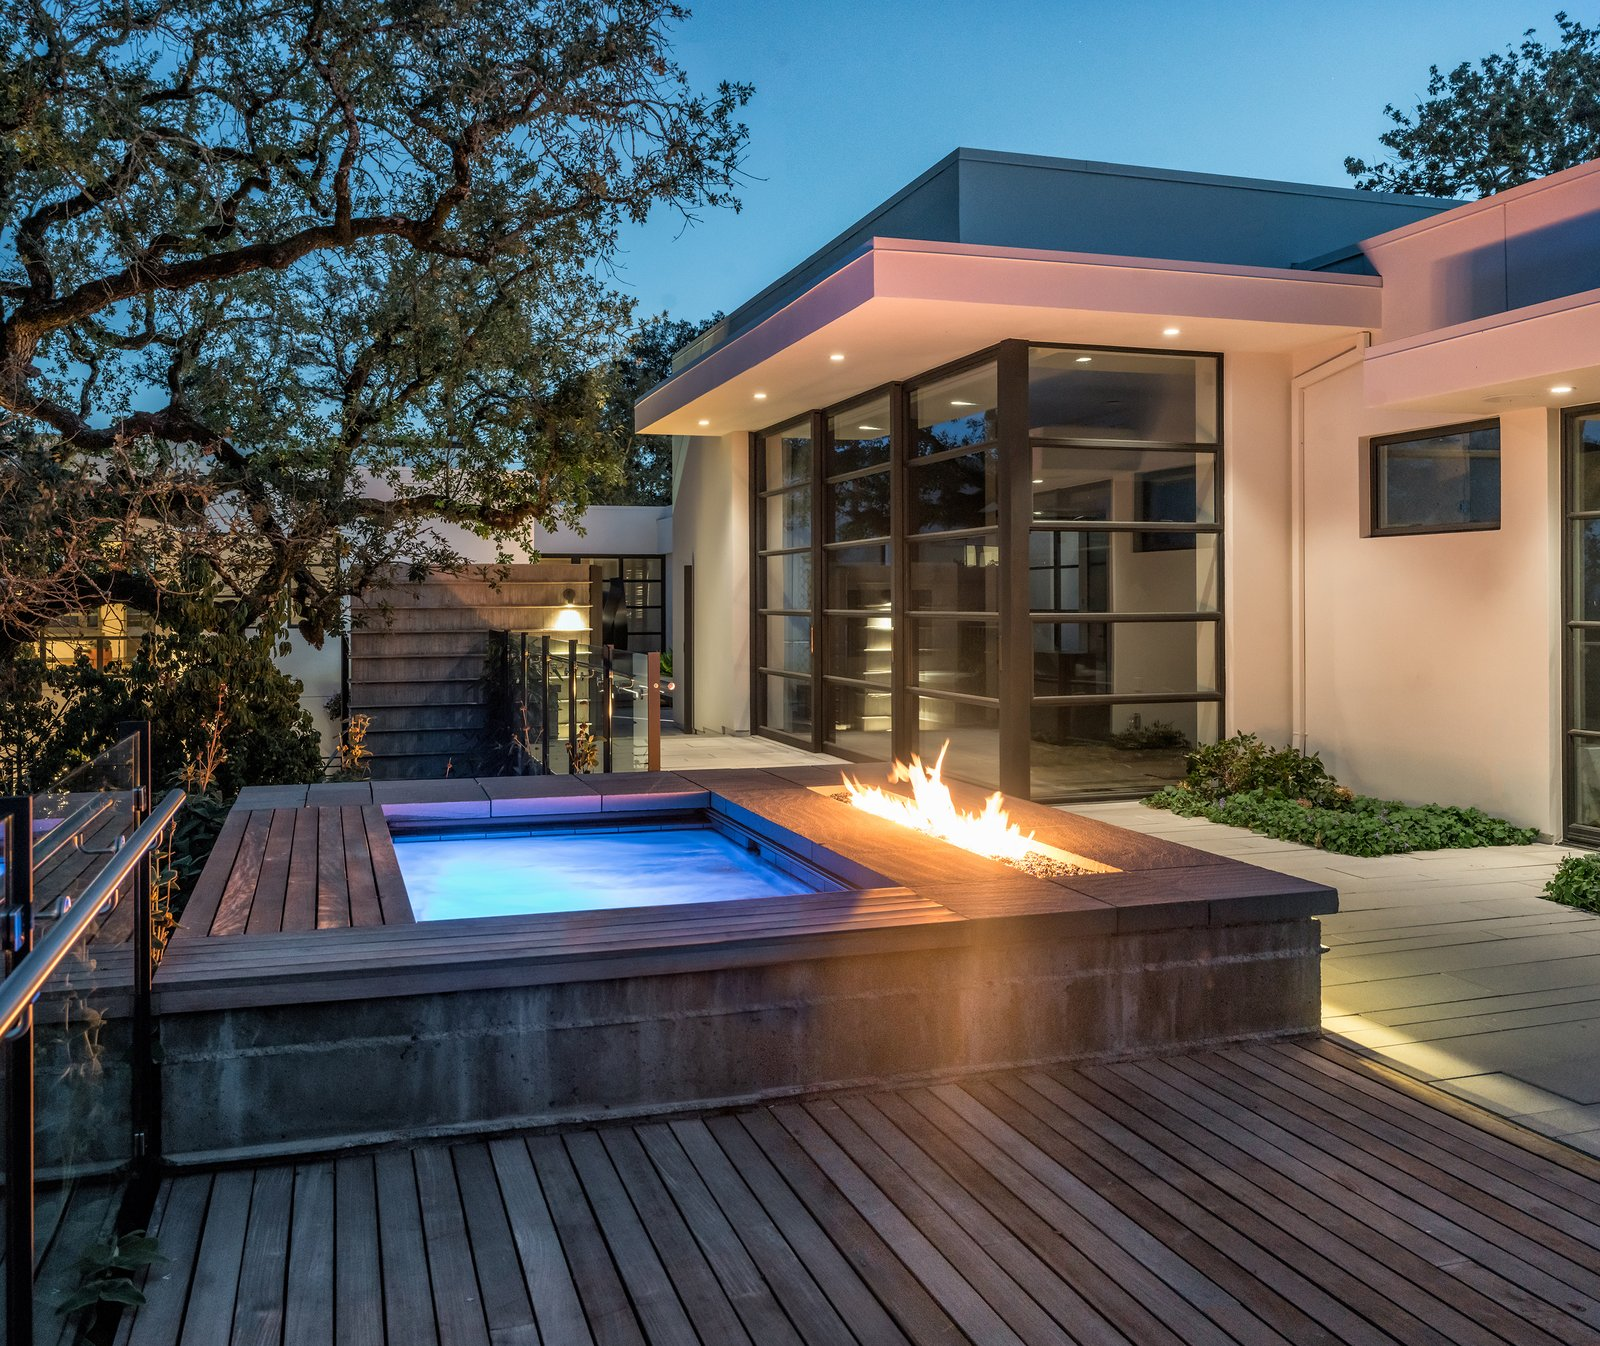 Lighted spa and fire feature at twilight Tagged: Outdoor, Wood Patio, Porch, Deck, Small Pools, Tubs, Shower, Concrete Patio, Porch, Deck, Trees, Shrubs, Small Patio, Porch, Deck, Hardscapes, Back Yard, and Landscape Lighting.  Hilltop Haven by Randy Thueme Design